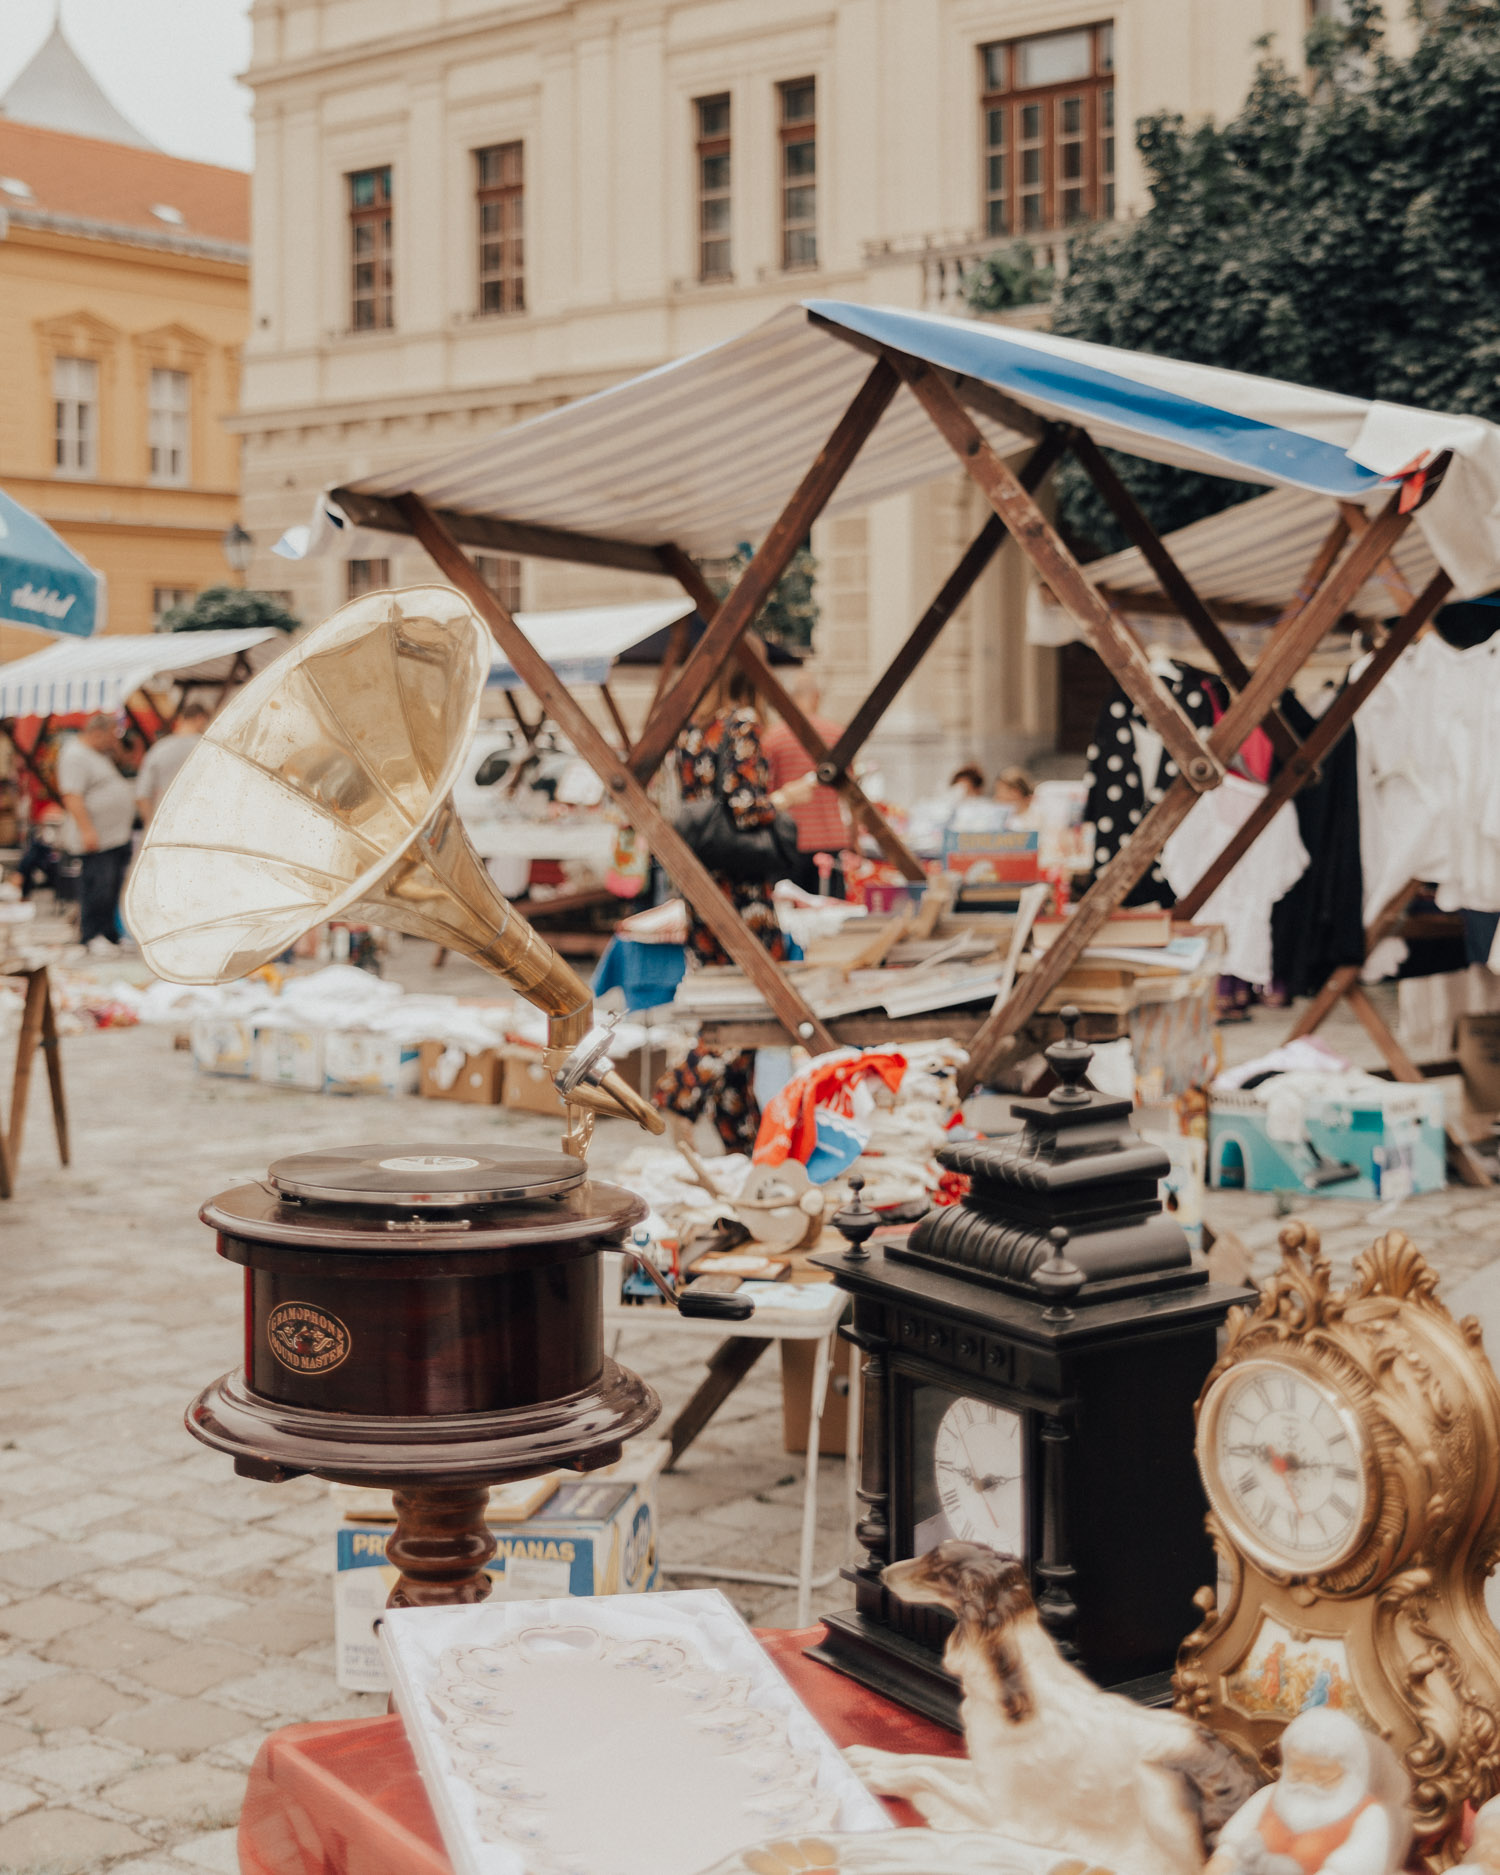 Things to Do in Slavonia | Visit the Antique market in Osijek